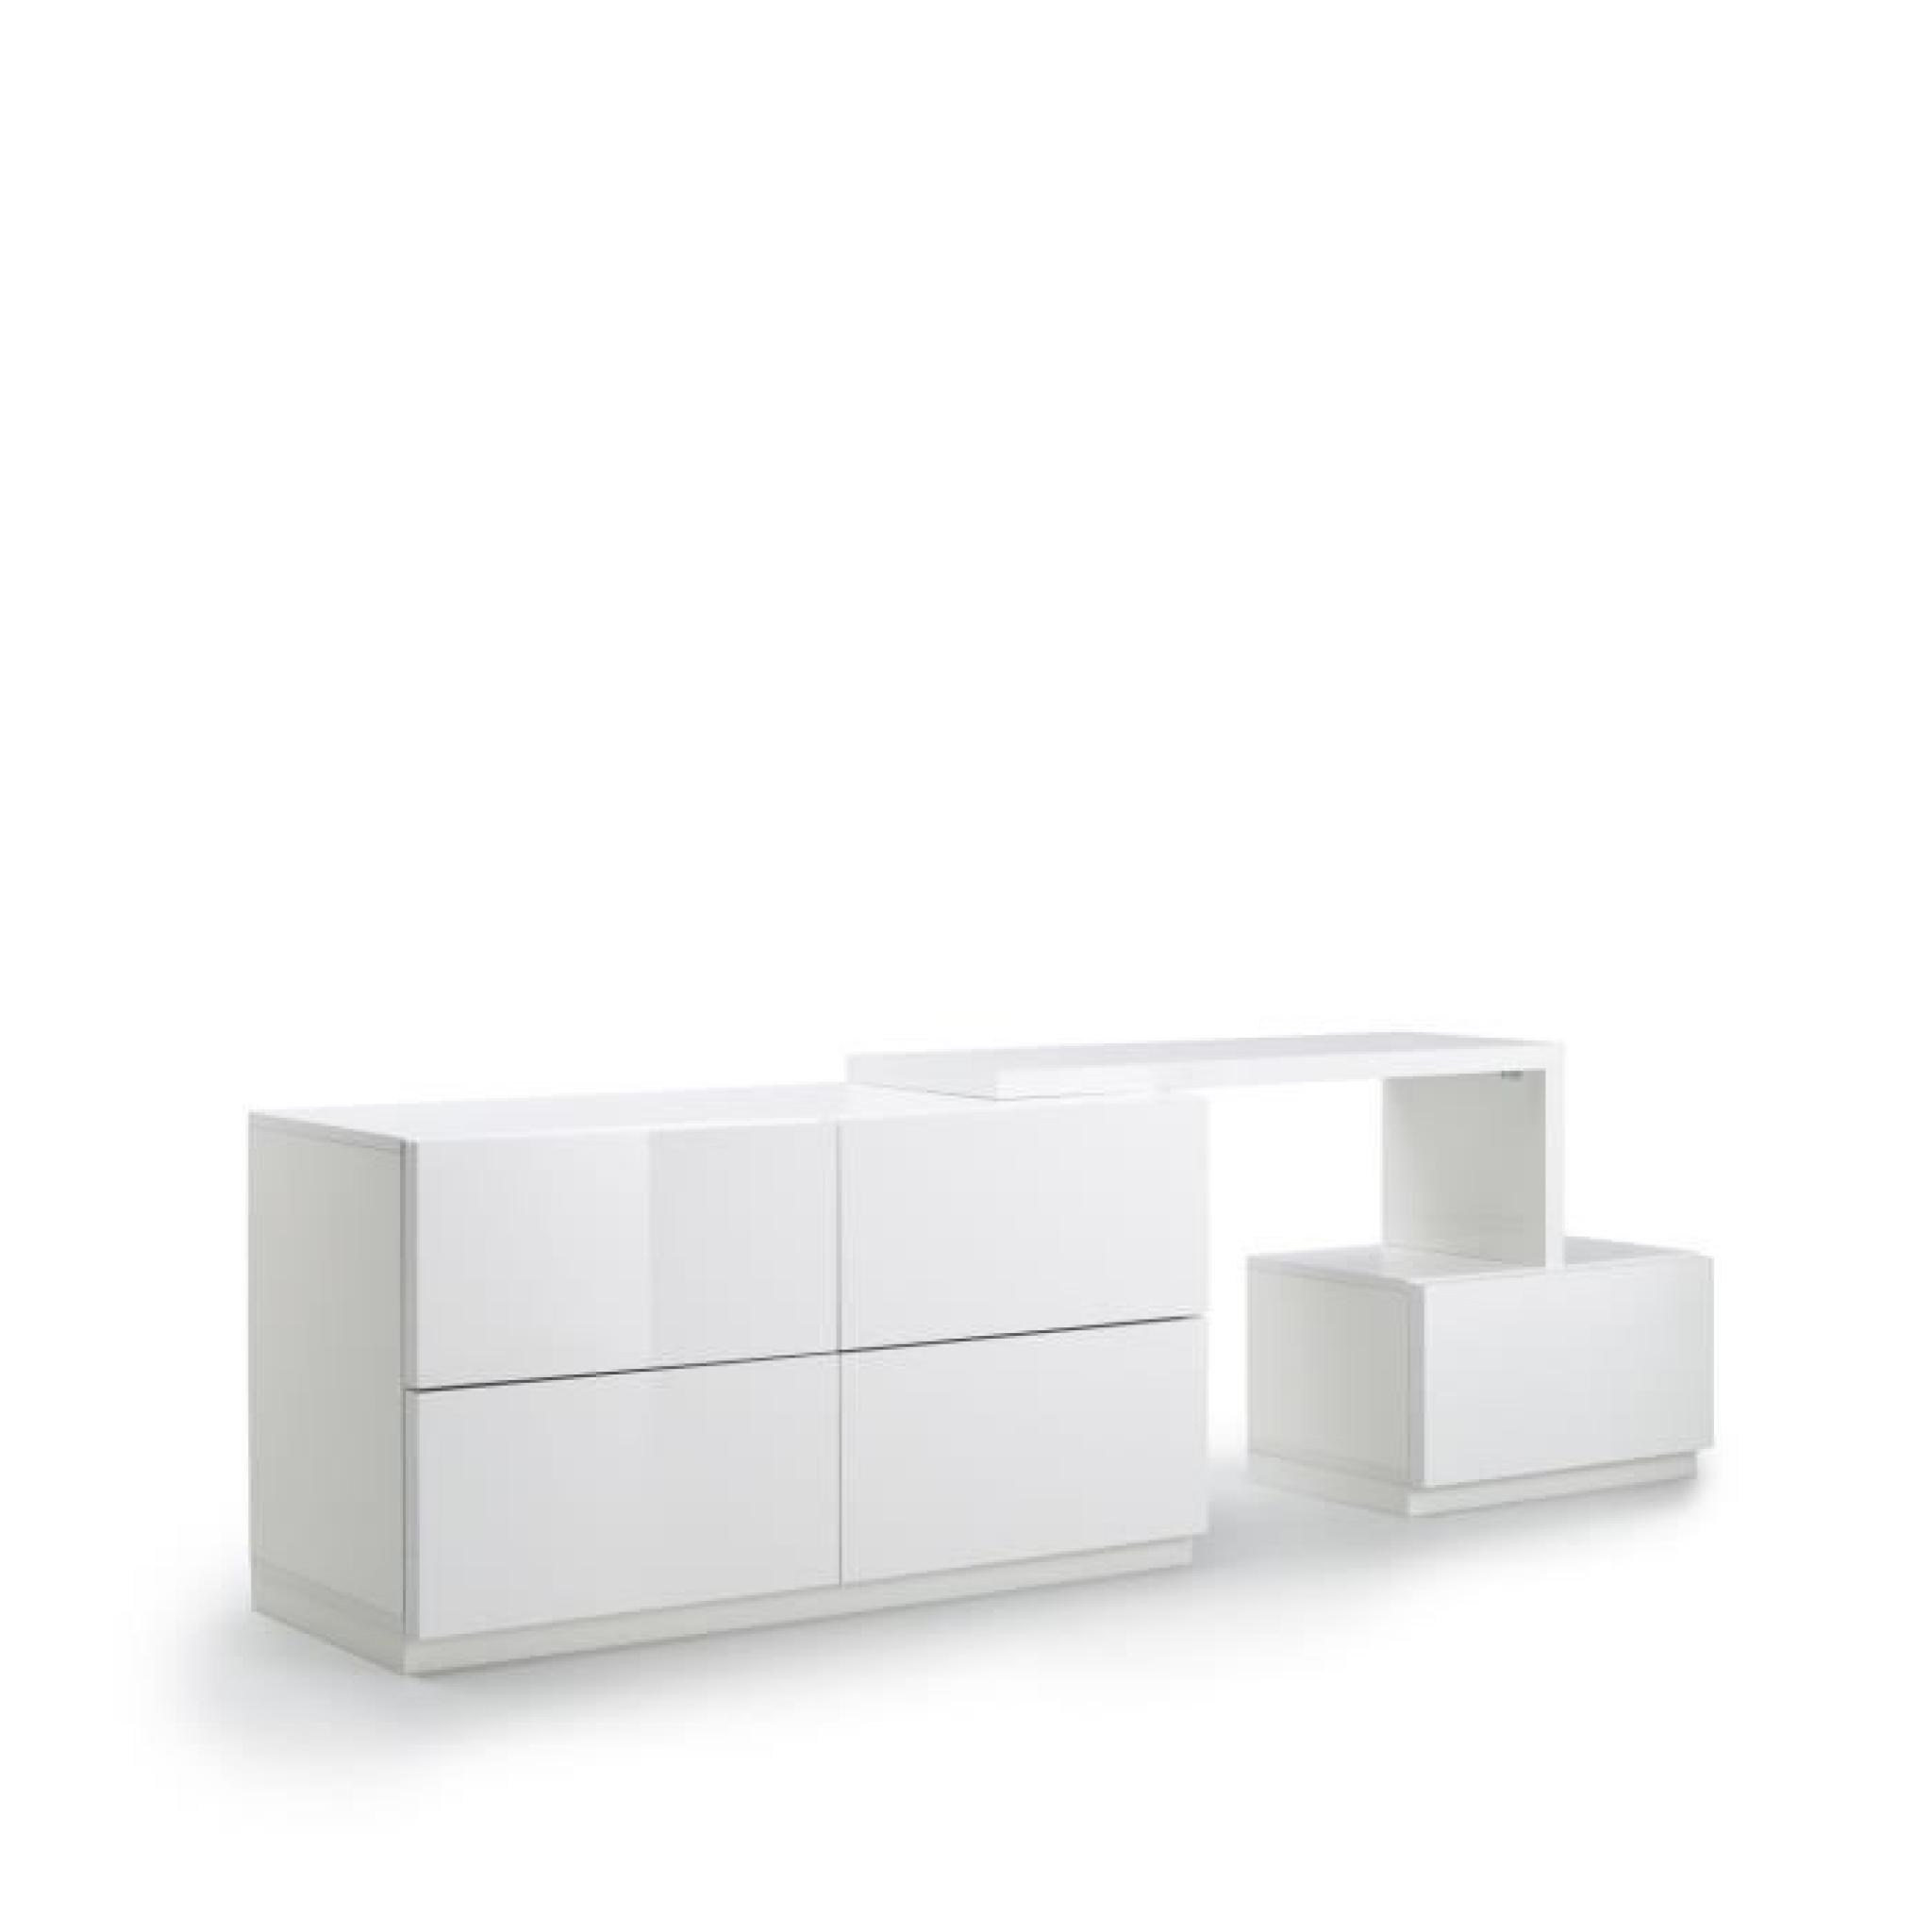 marina console blanc laqu achat vente console meuble pas cher couleur et. Black Bedroom Furniture Sets. Home Design Ideas